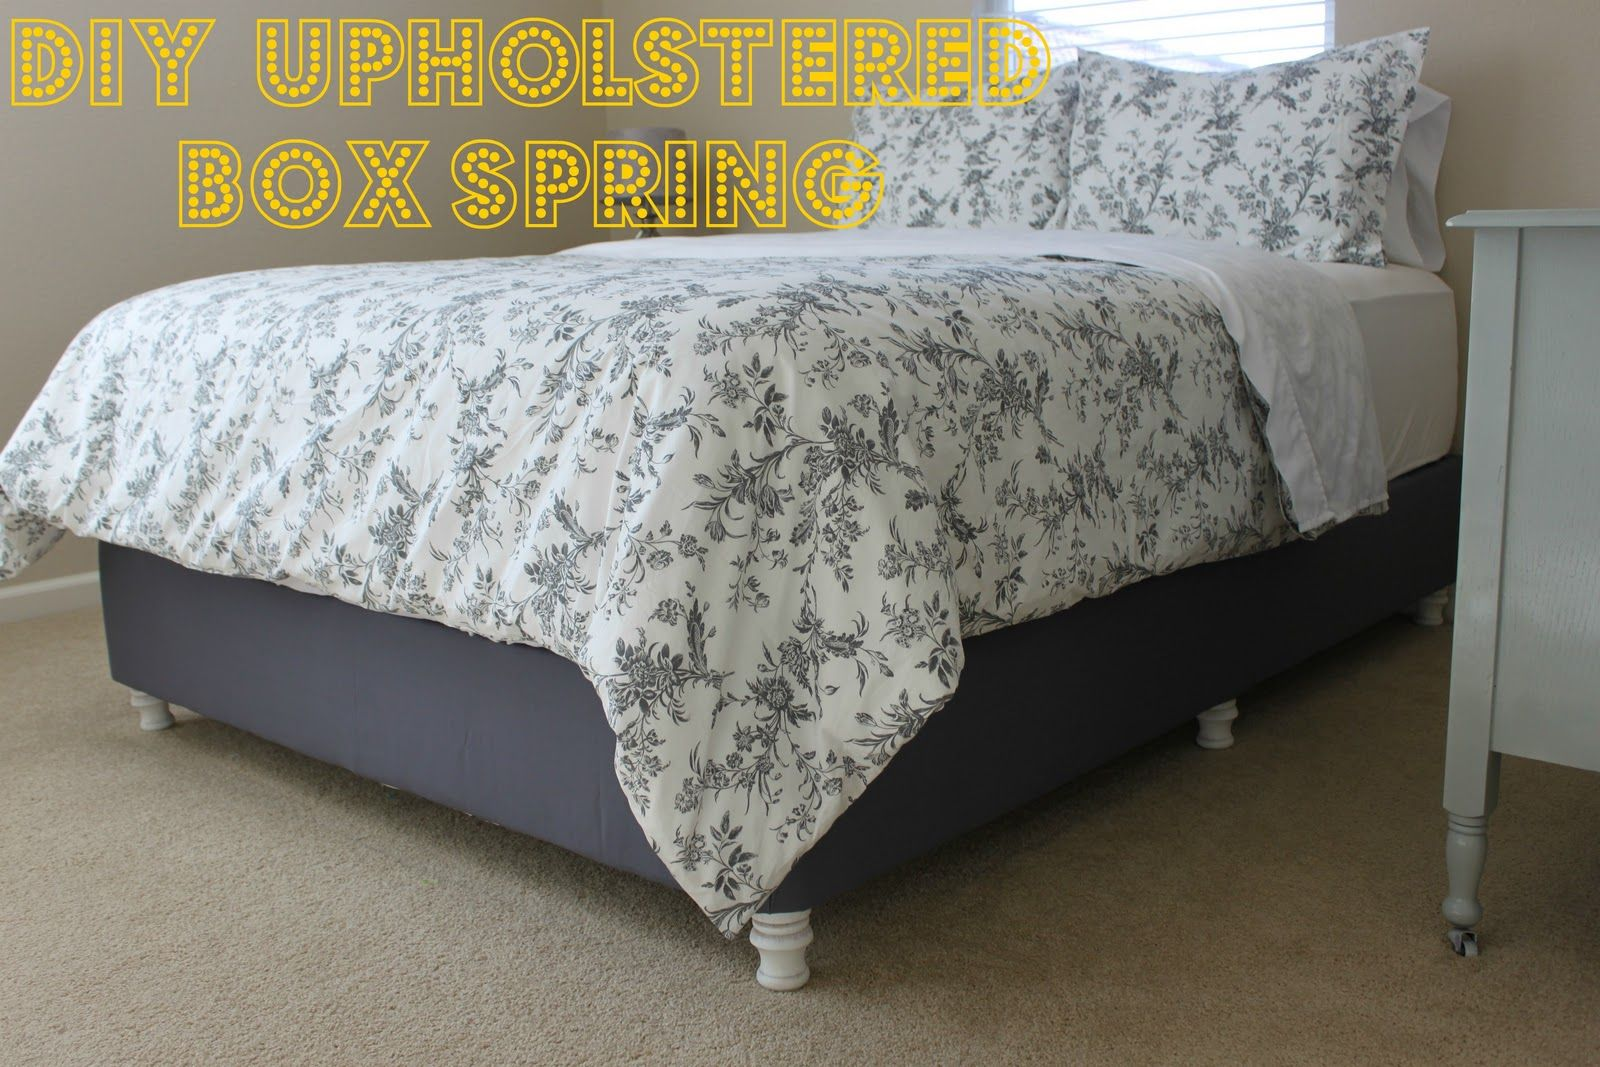 Diy Upholstered Box Spring Maybe I Ll Do This Instead Of Ing A Bed Frame